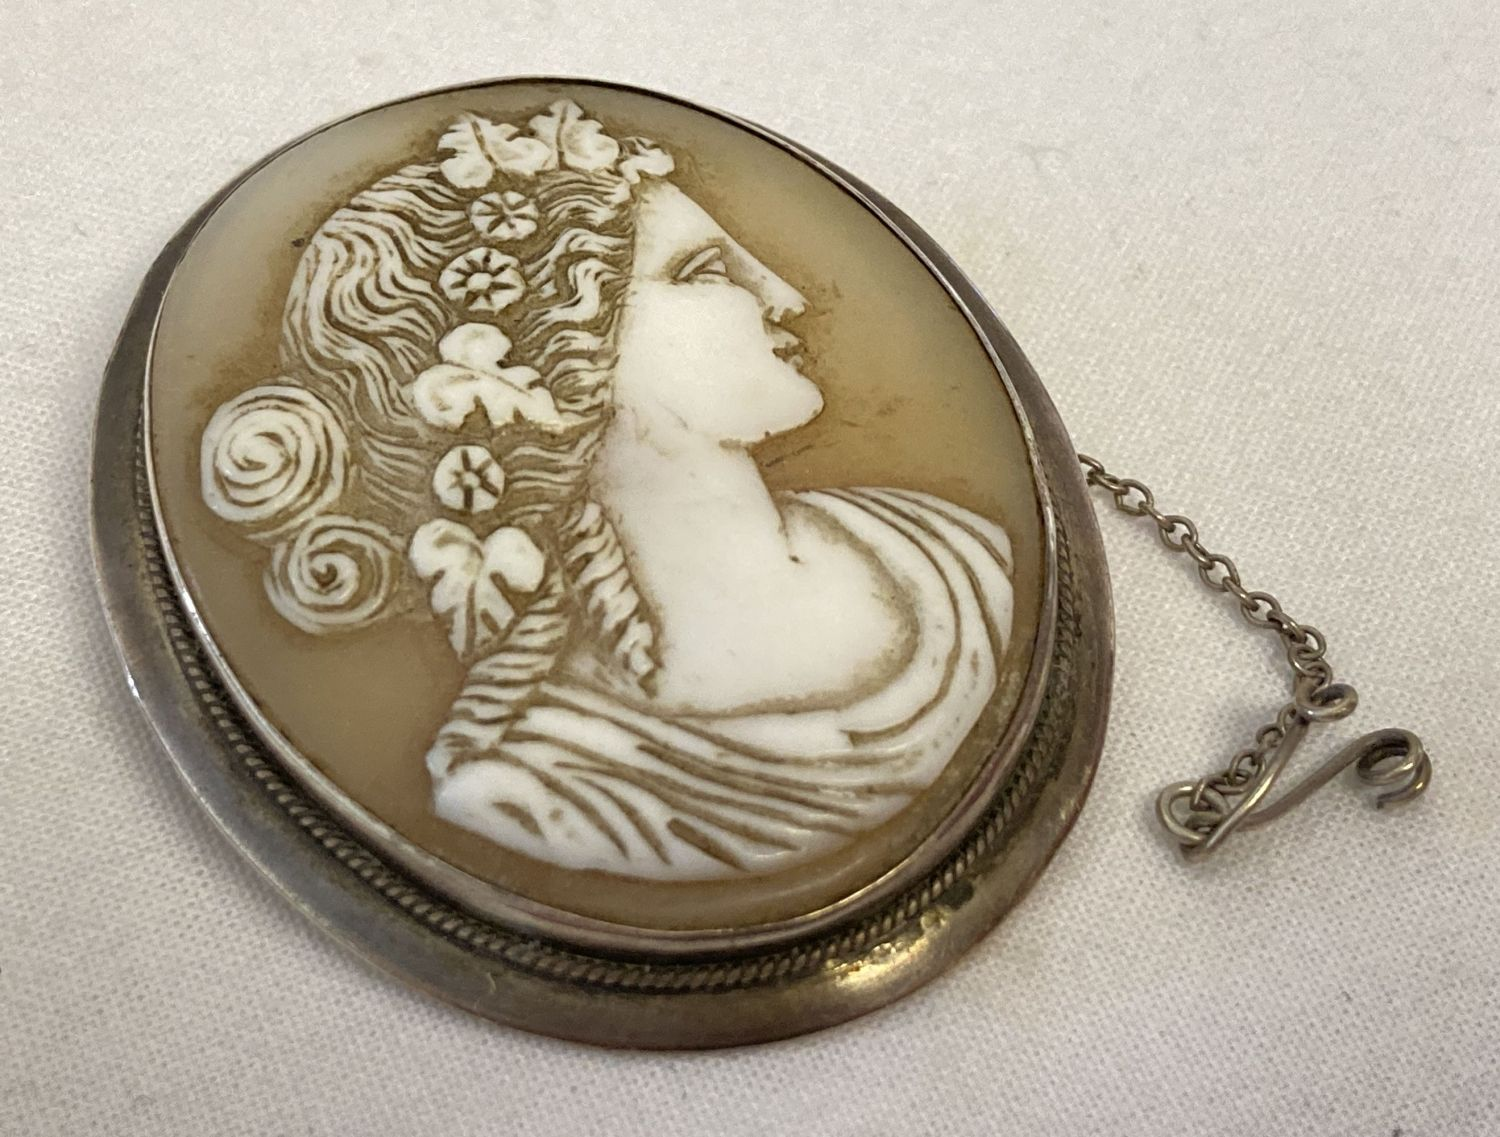 A large vintage white metal cameo brooch with safety chain, pin missing.